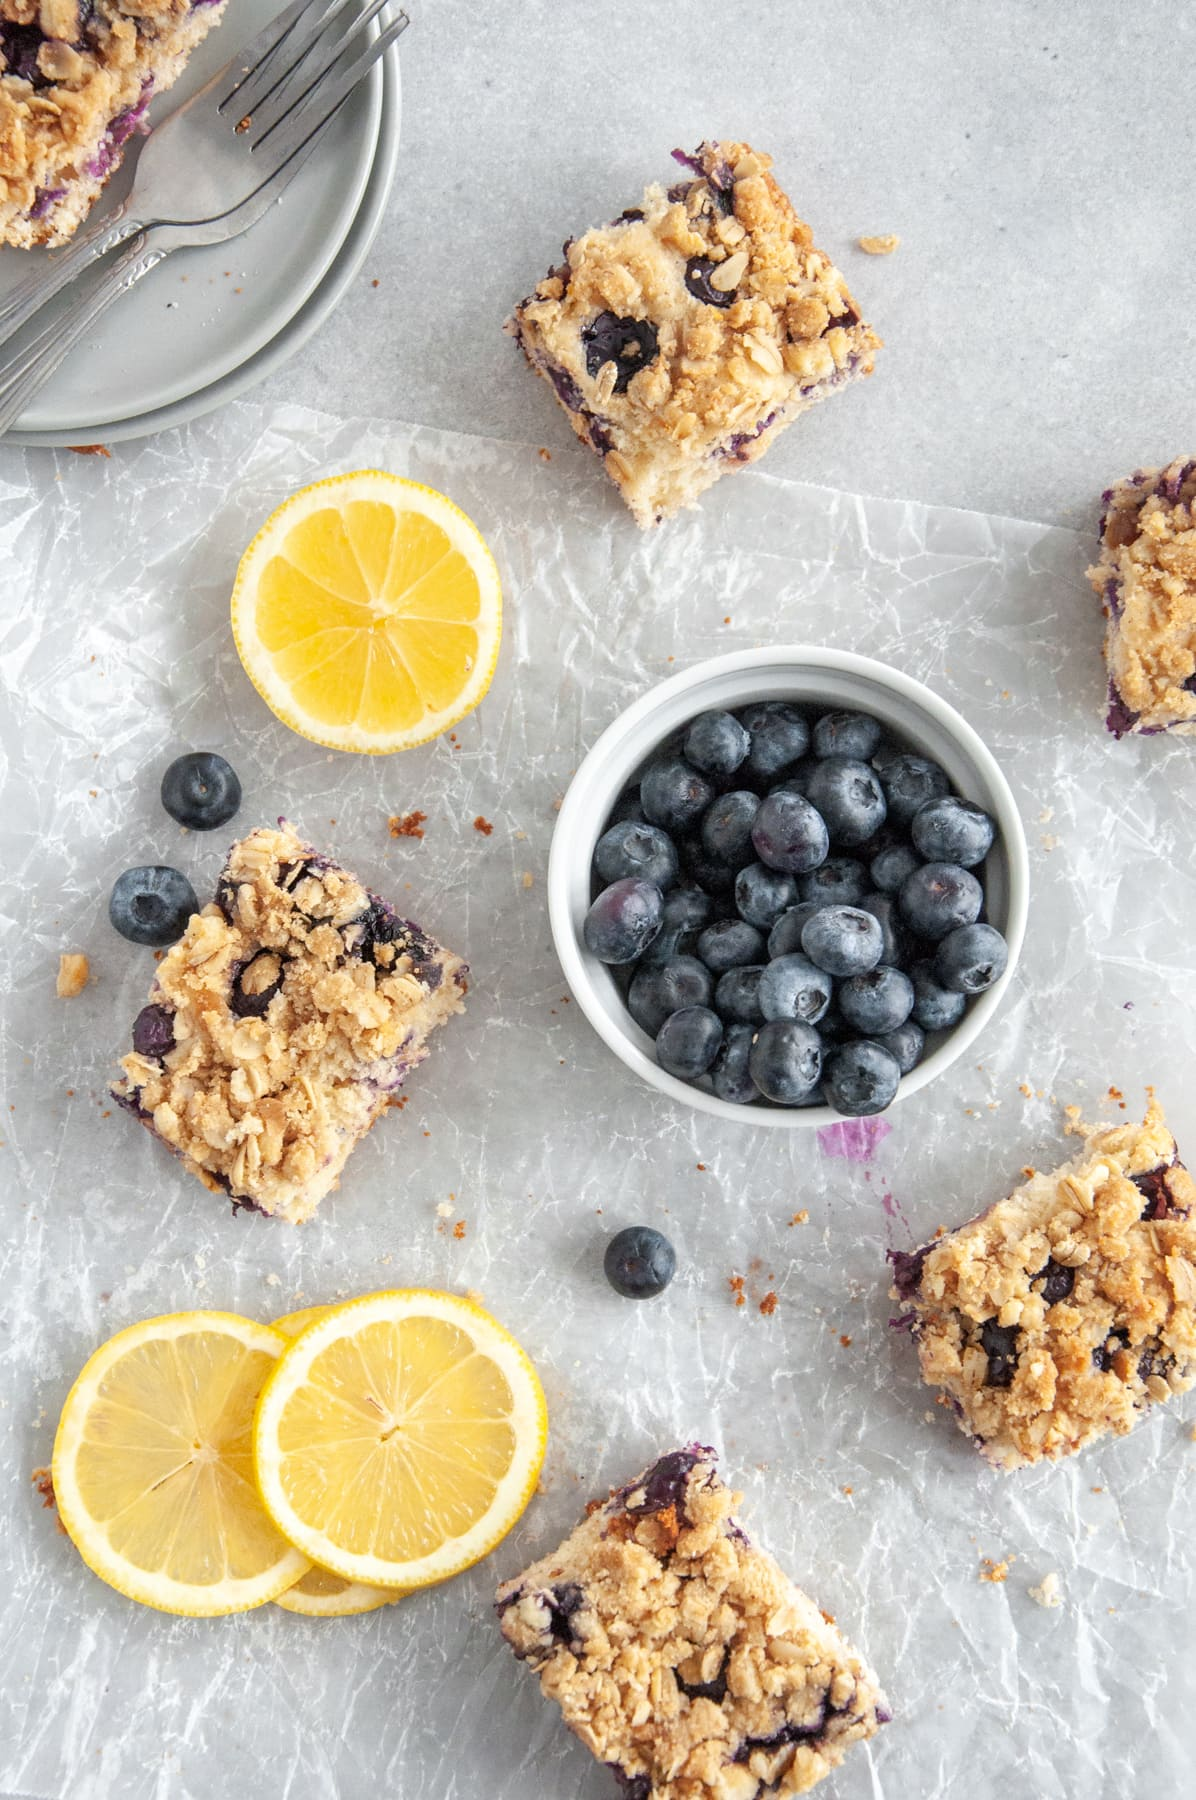 slices of lemon blueberry coffee cake among a bowl of blueberries and lemon slices